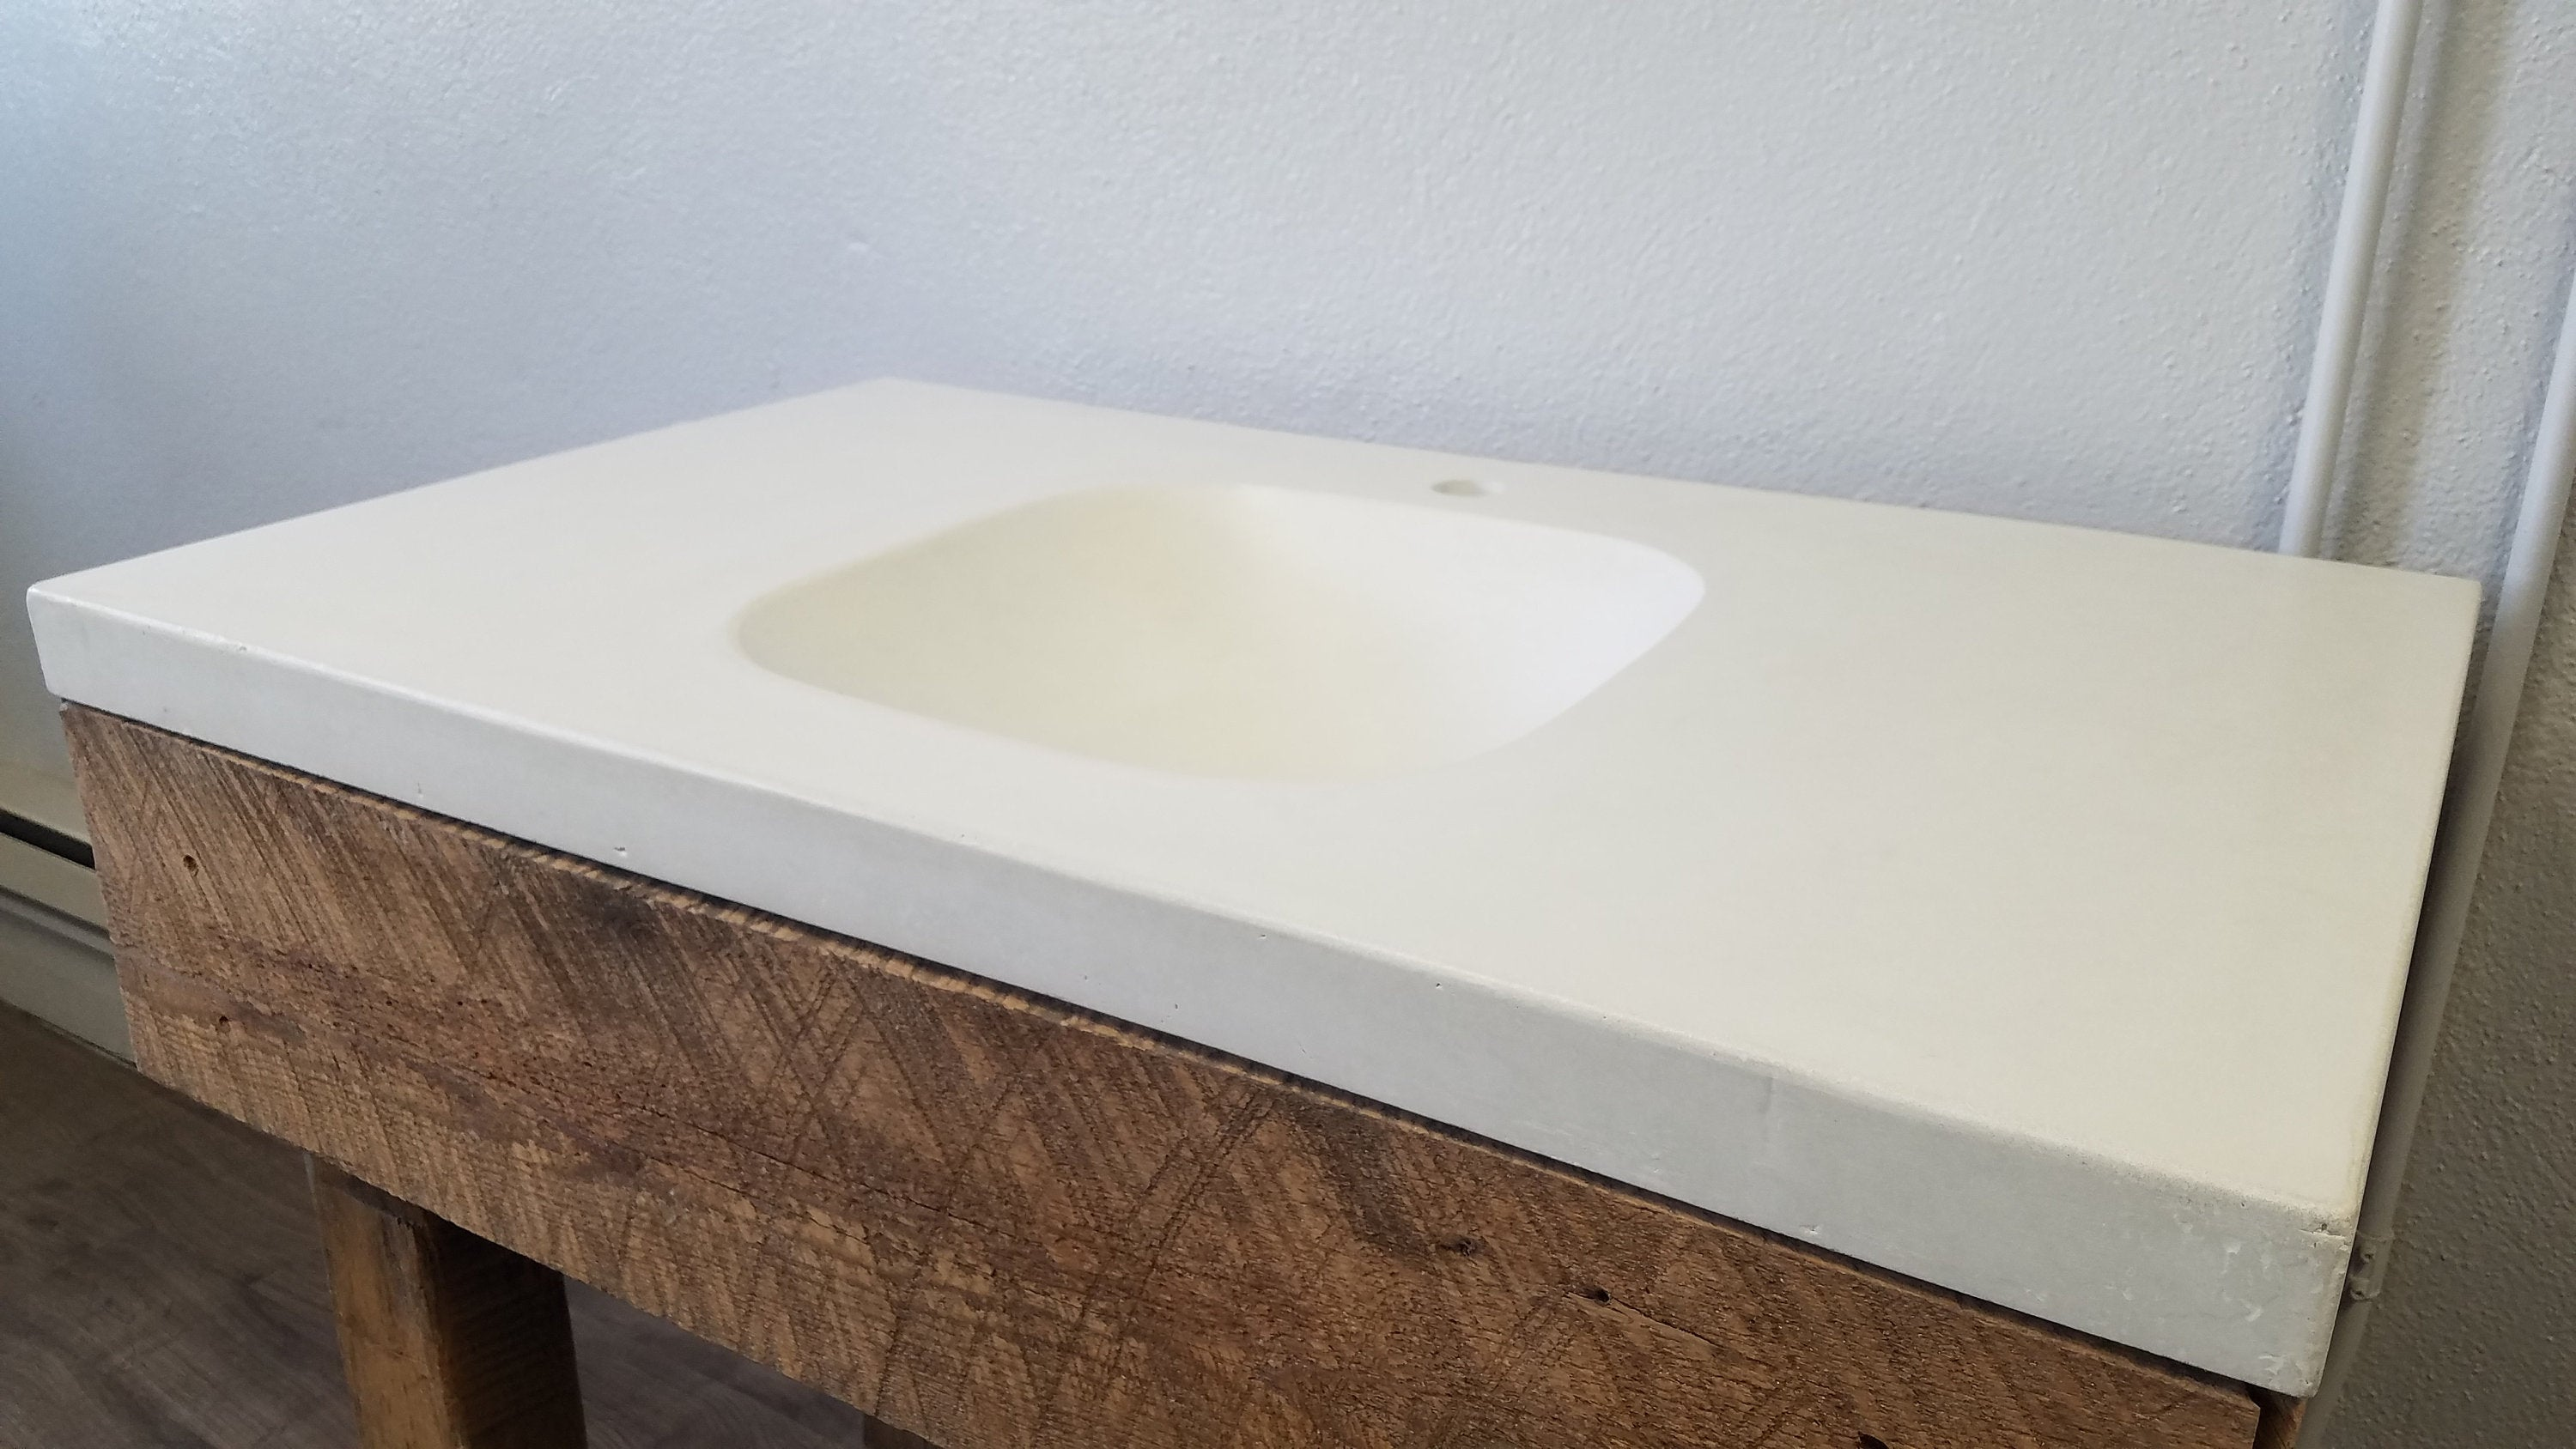 Concrete vanity top with integral sink